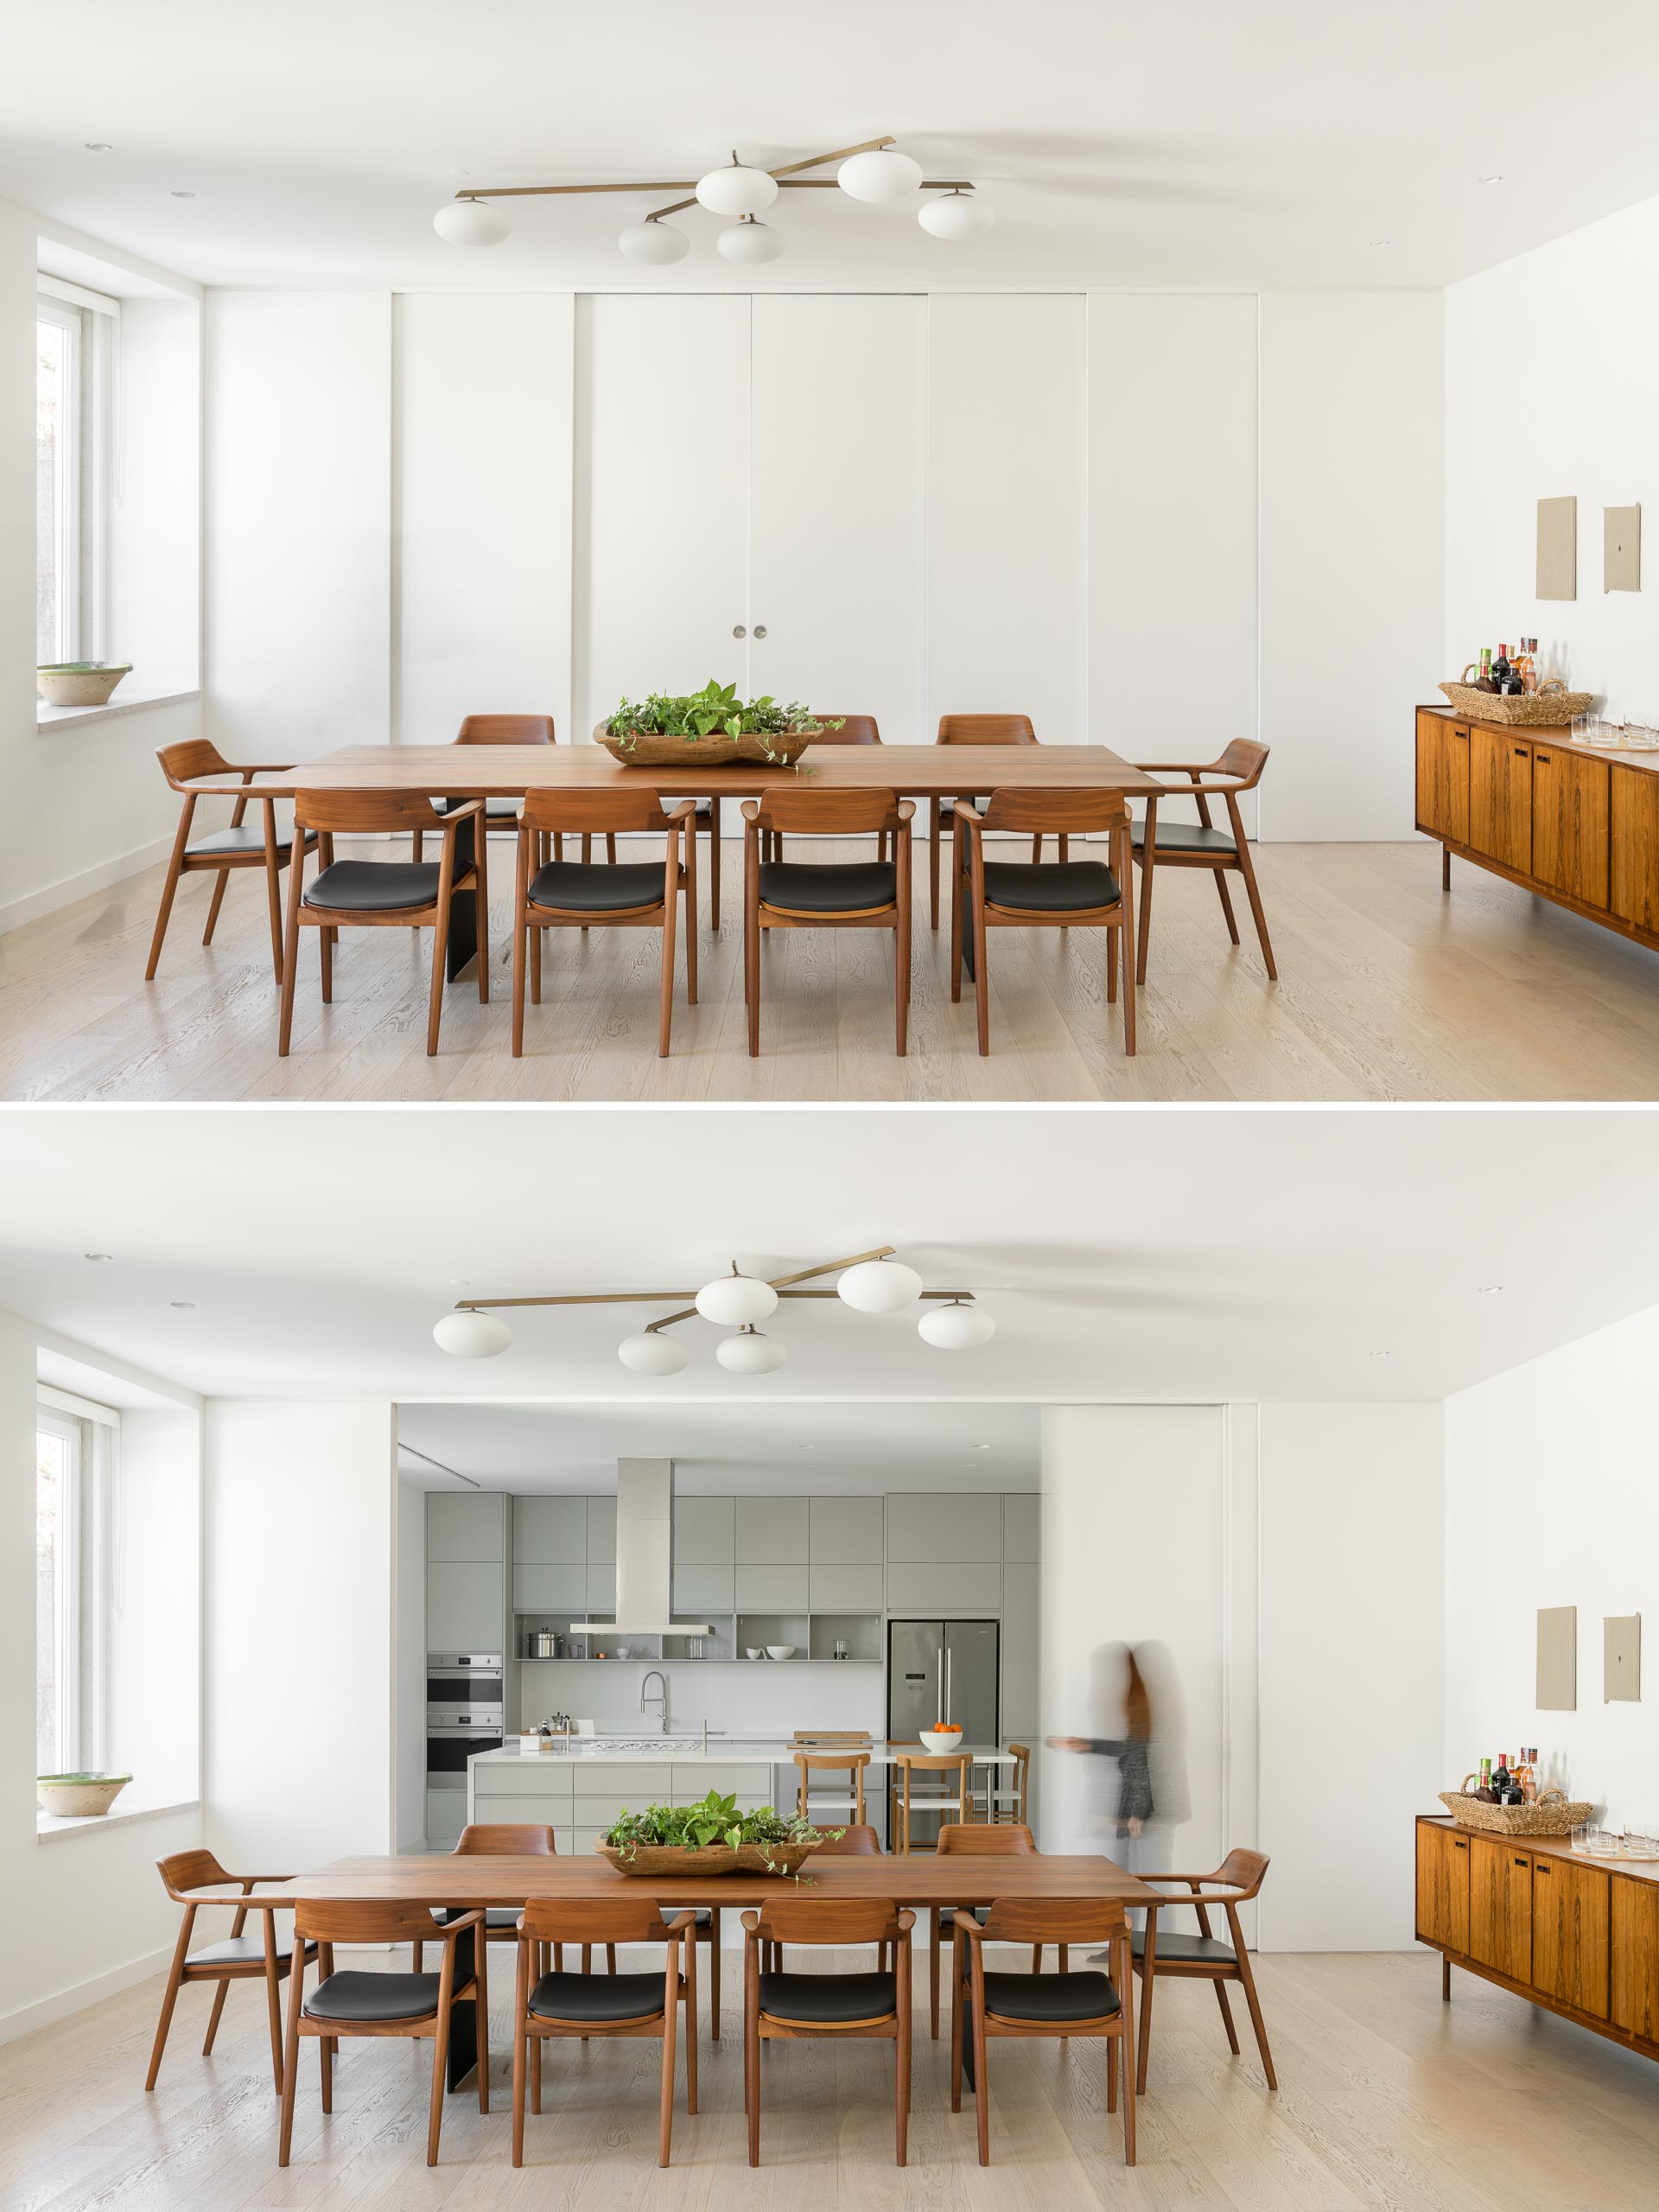 Sliding white panels doors hide the kitchen from the dining room.